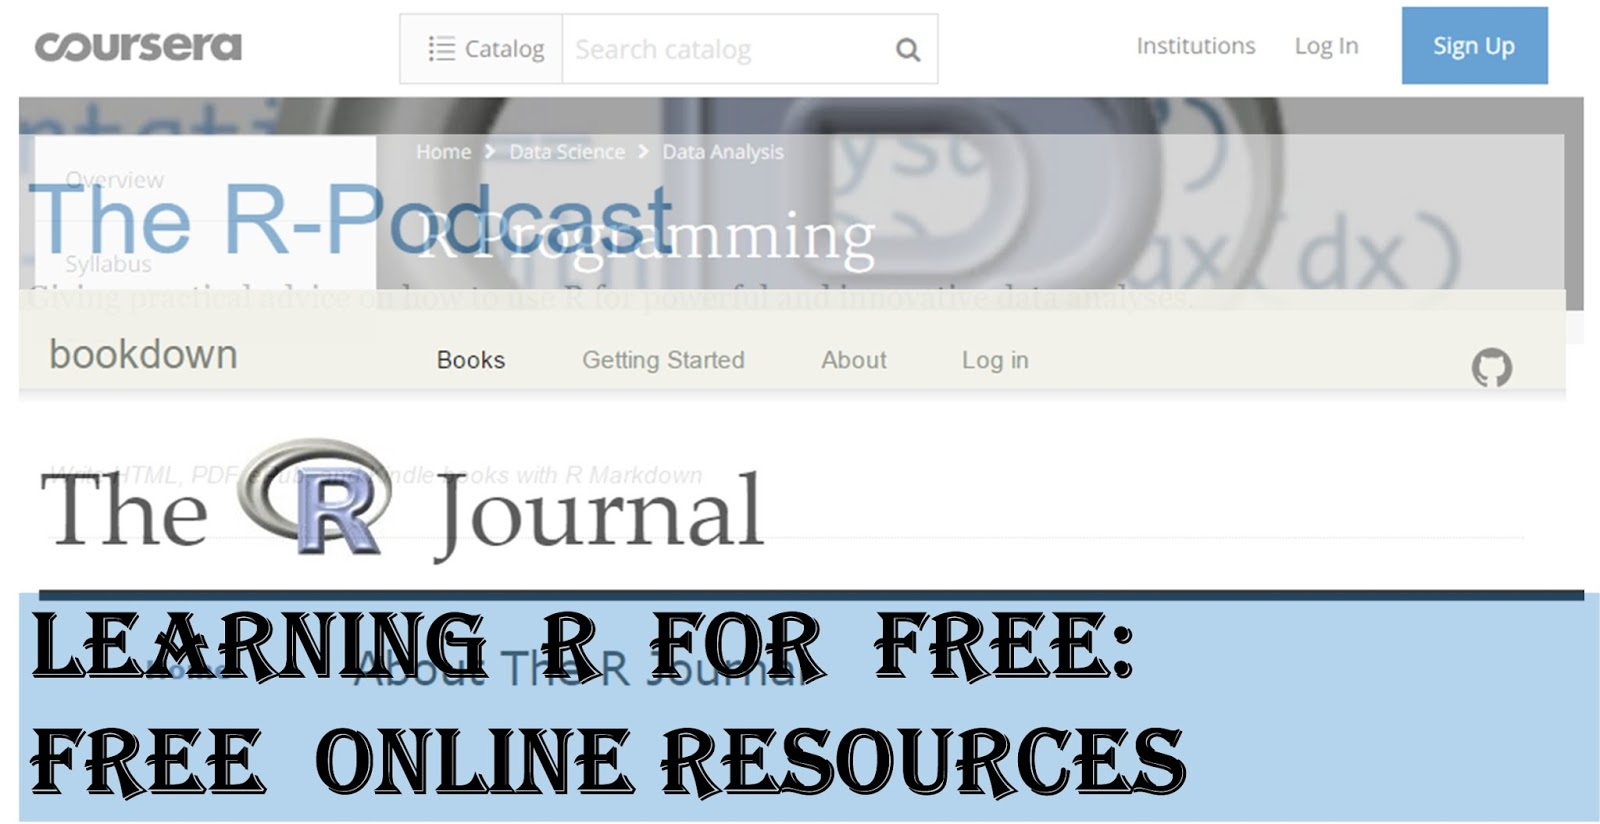 Learning R for FREE: Free online resources